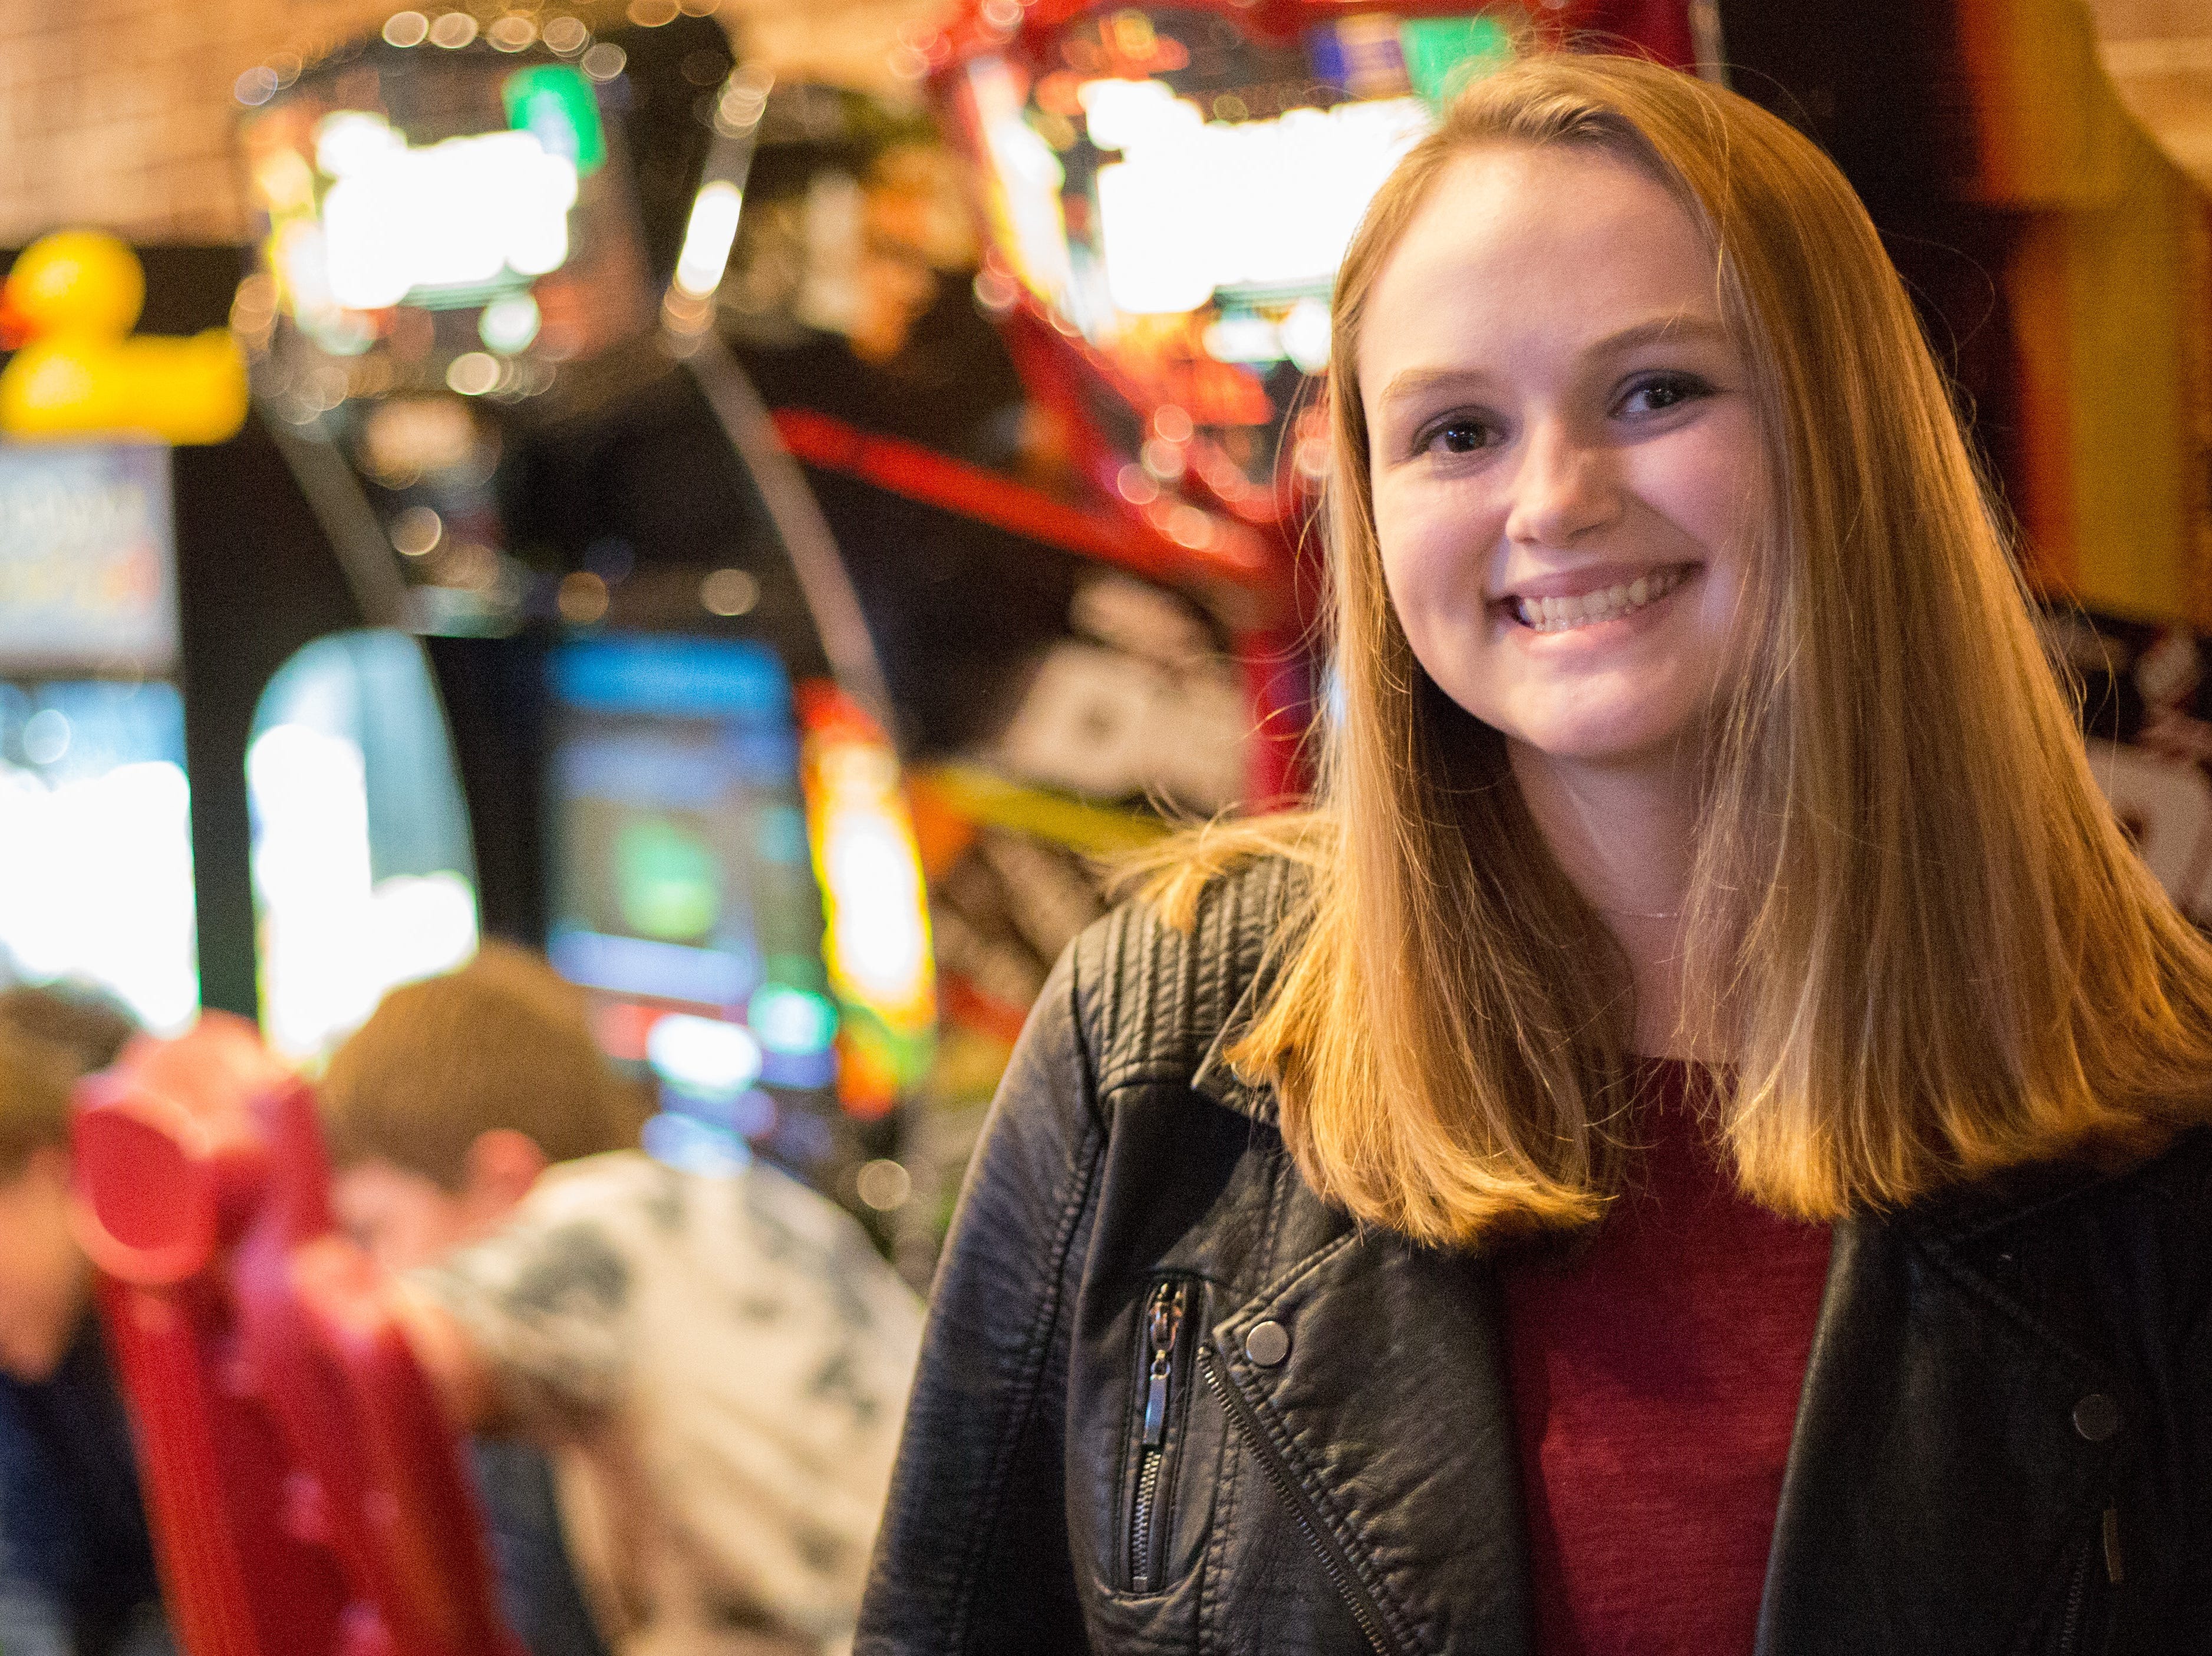 Sydney pauses for a photograph during a Super Smash Brothers Ultimate Tournament presented by Big Dad Games at Filly's Game and Grill in Gallatin on Monday, Jan 14.